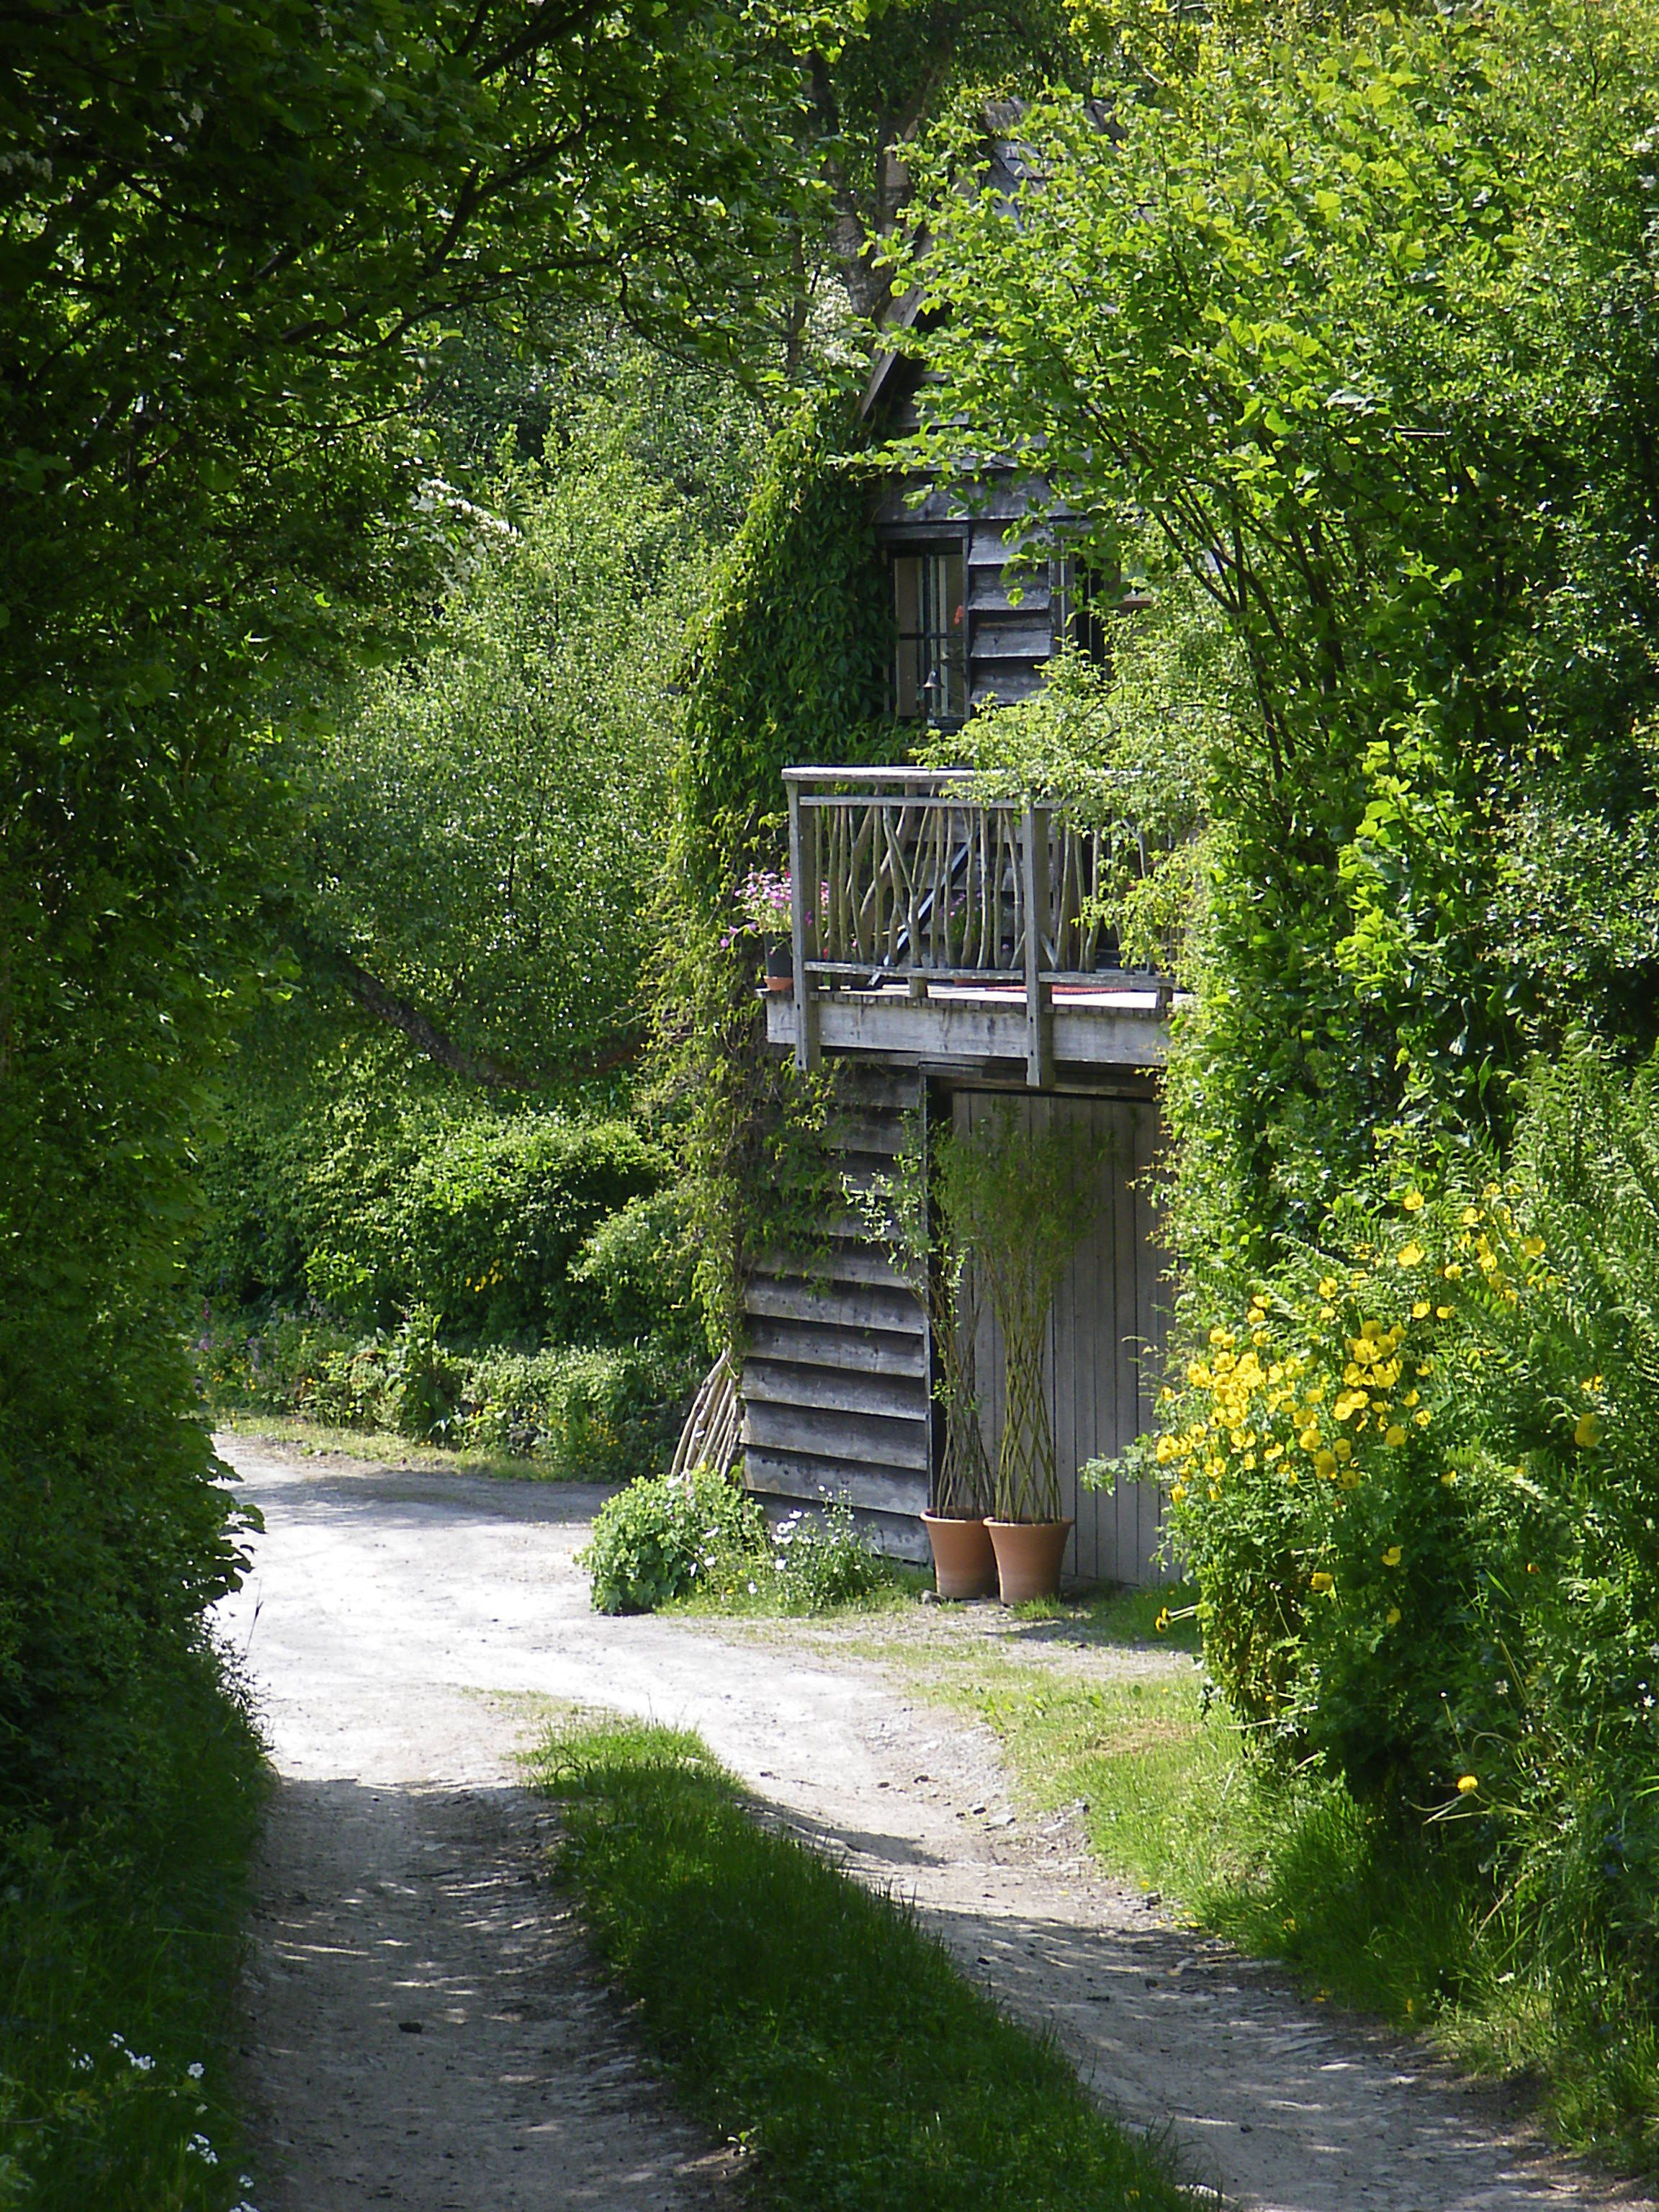 The Gorfanc Hideaway, Powys. Gorfanc is an 11 acre smallholdingn in a fold of the ancient Cambrian Mountains, a mile and a half from the village of Carno http://www.organicholidays.co.uk/at/1249.htm